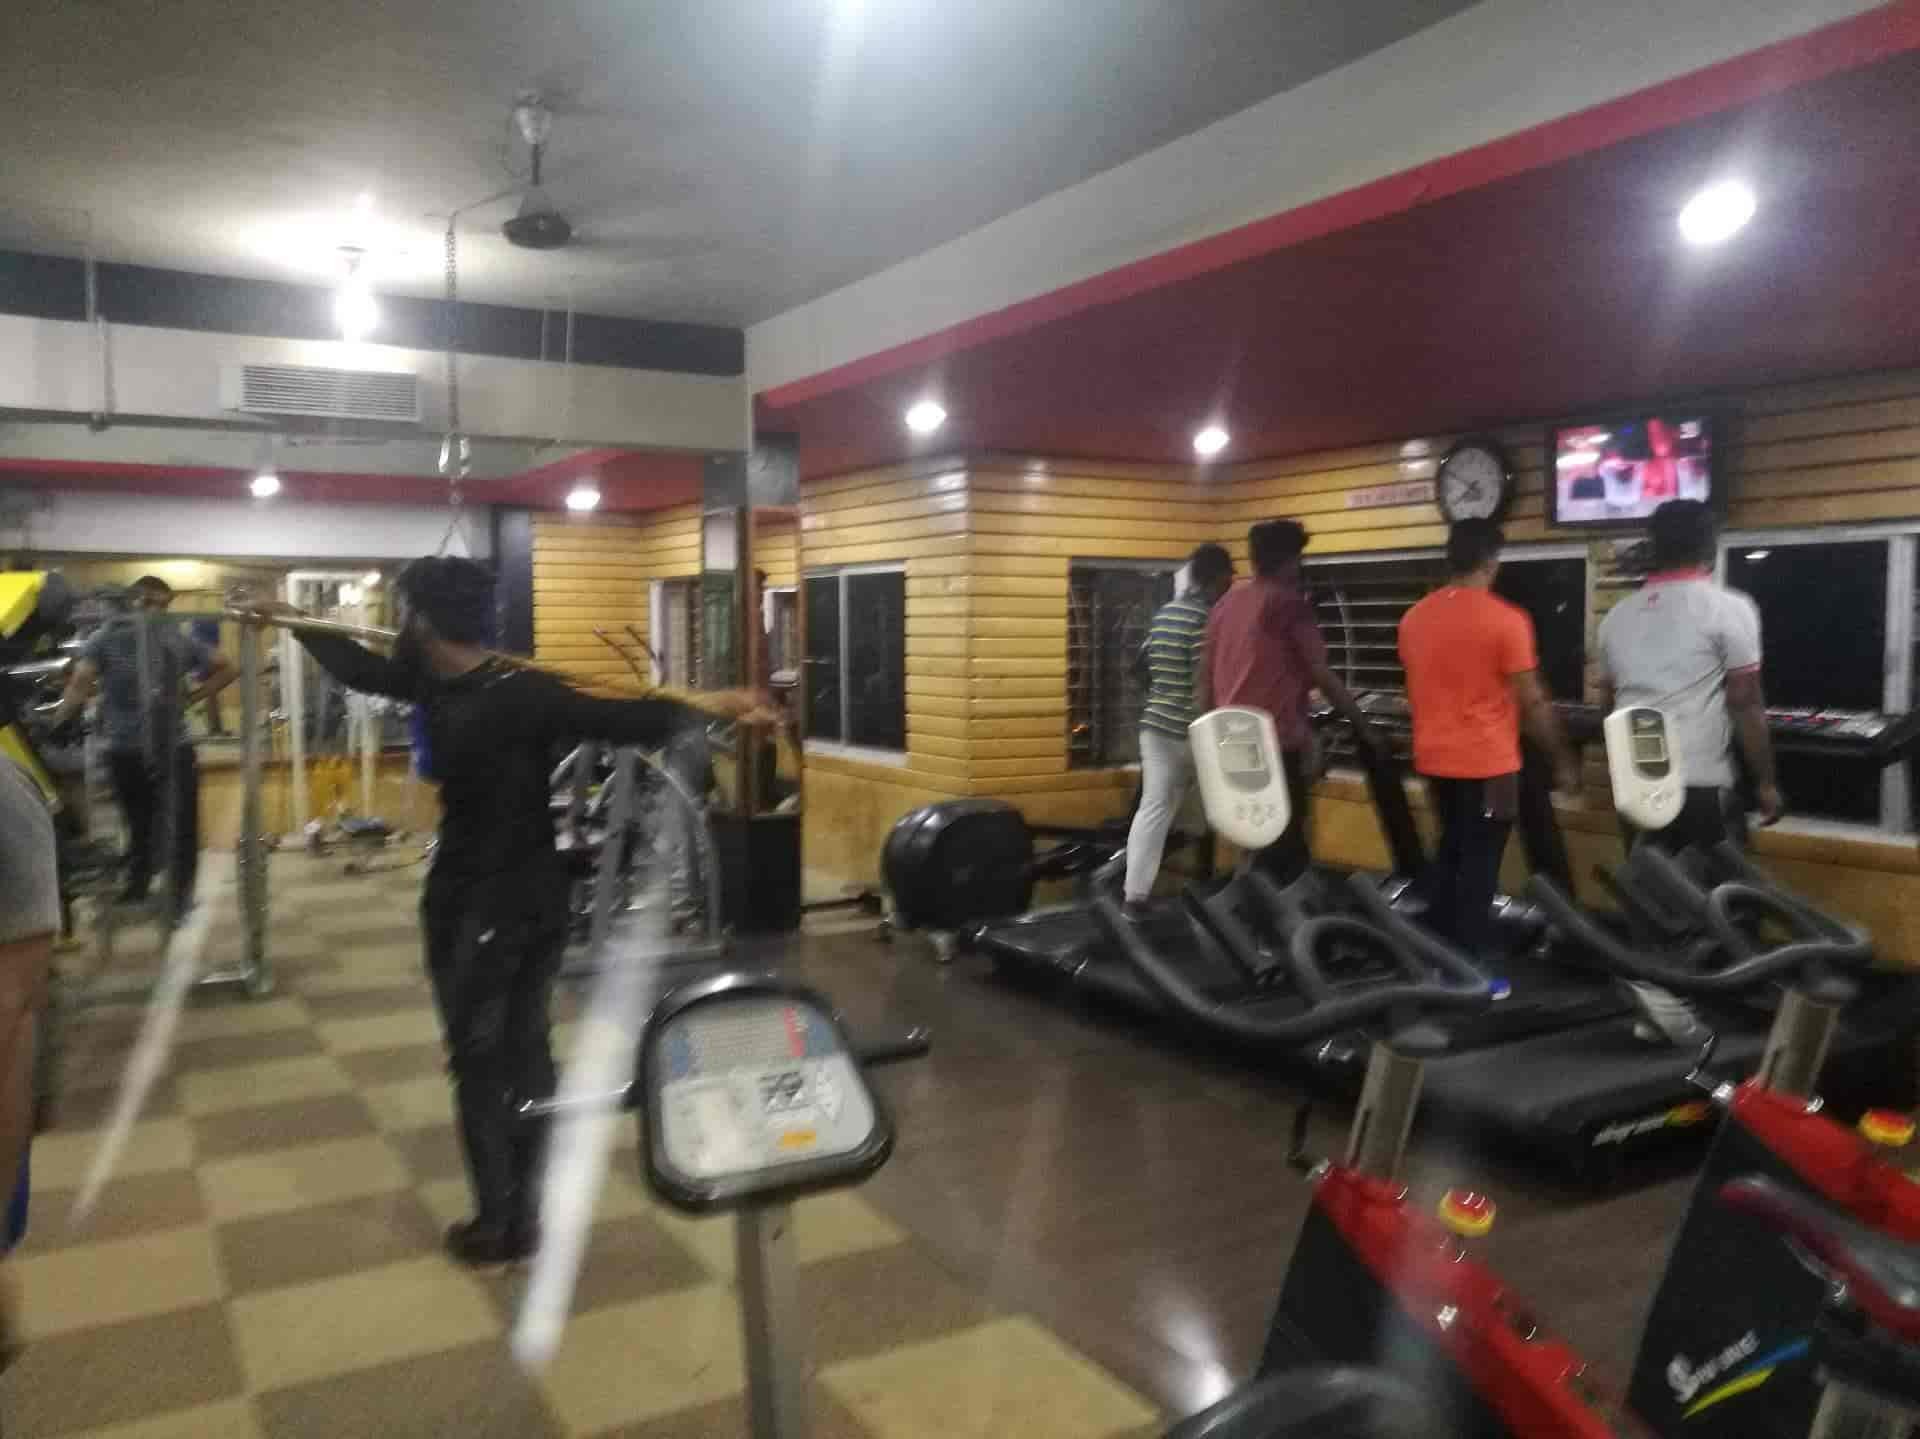 Standard gym station bazar gyms in gulbarga justdial